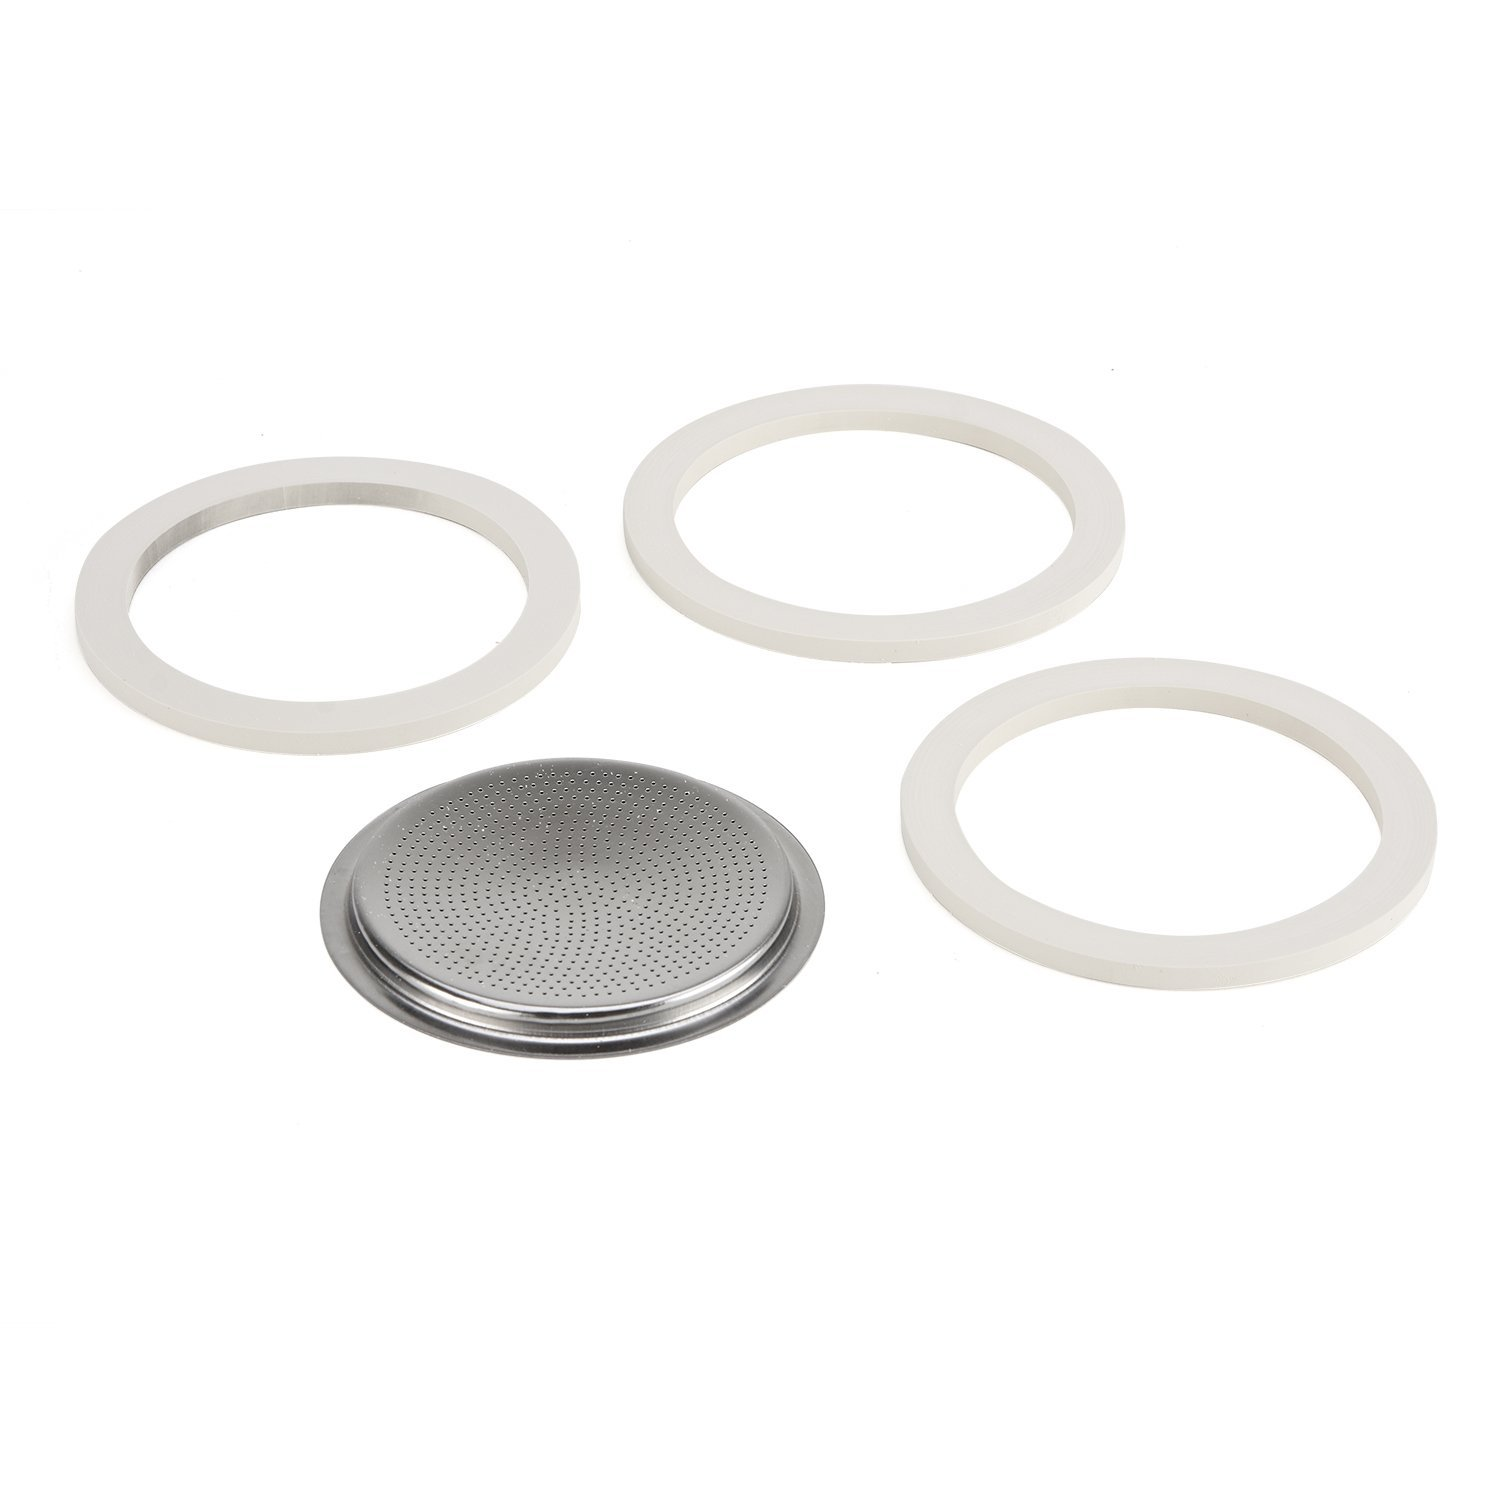 Bialetti Gasket and Filter Set for Stainless Steel Espresso Makers - 10 Cup eBay